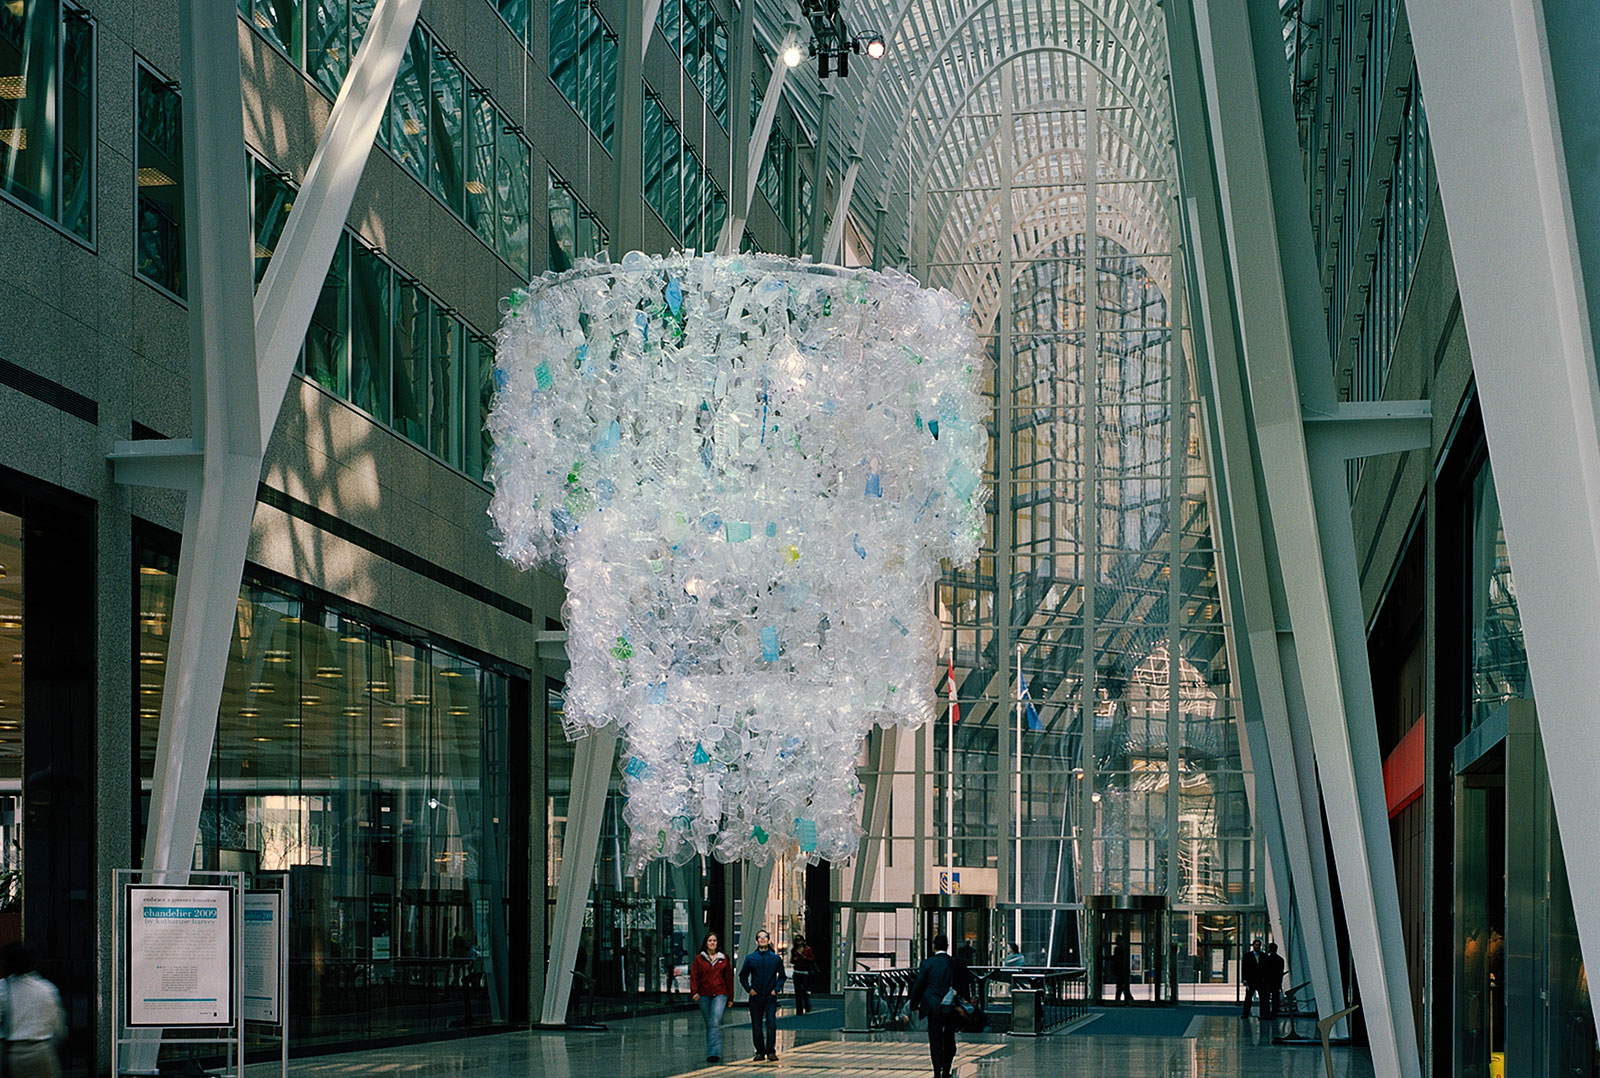 Image of Chandalier, an toronto art installation , hanging in